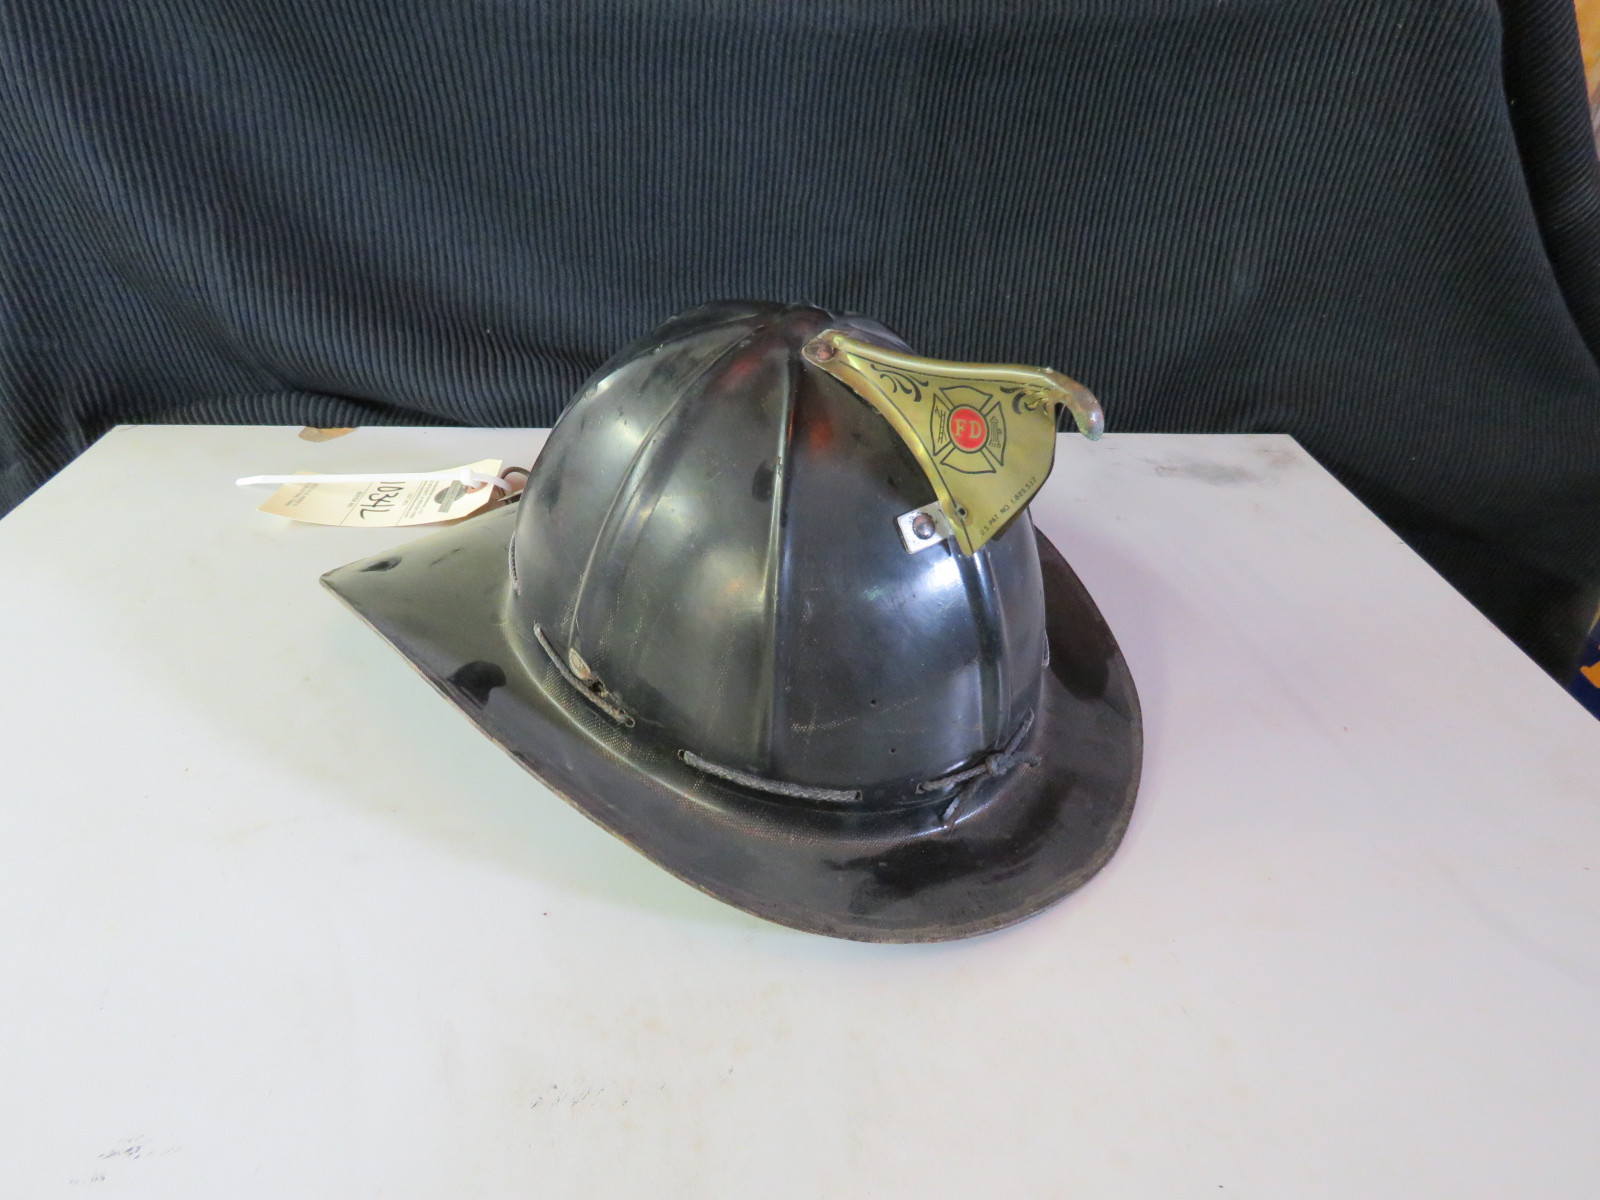 Fire Chief Helmet - Image 1